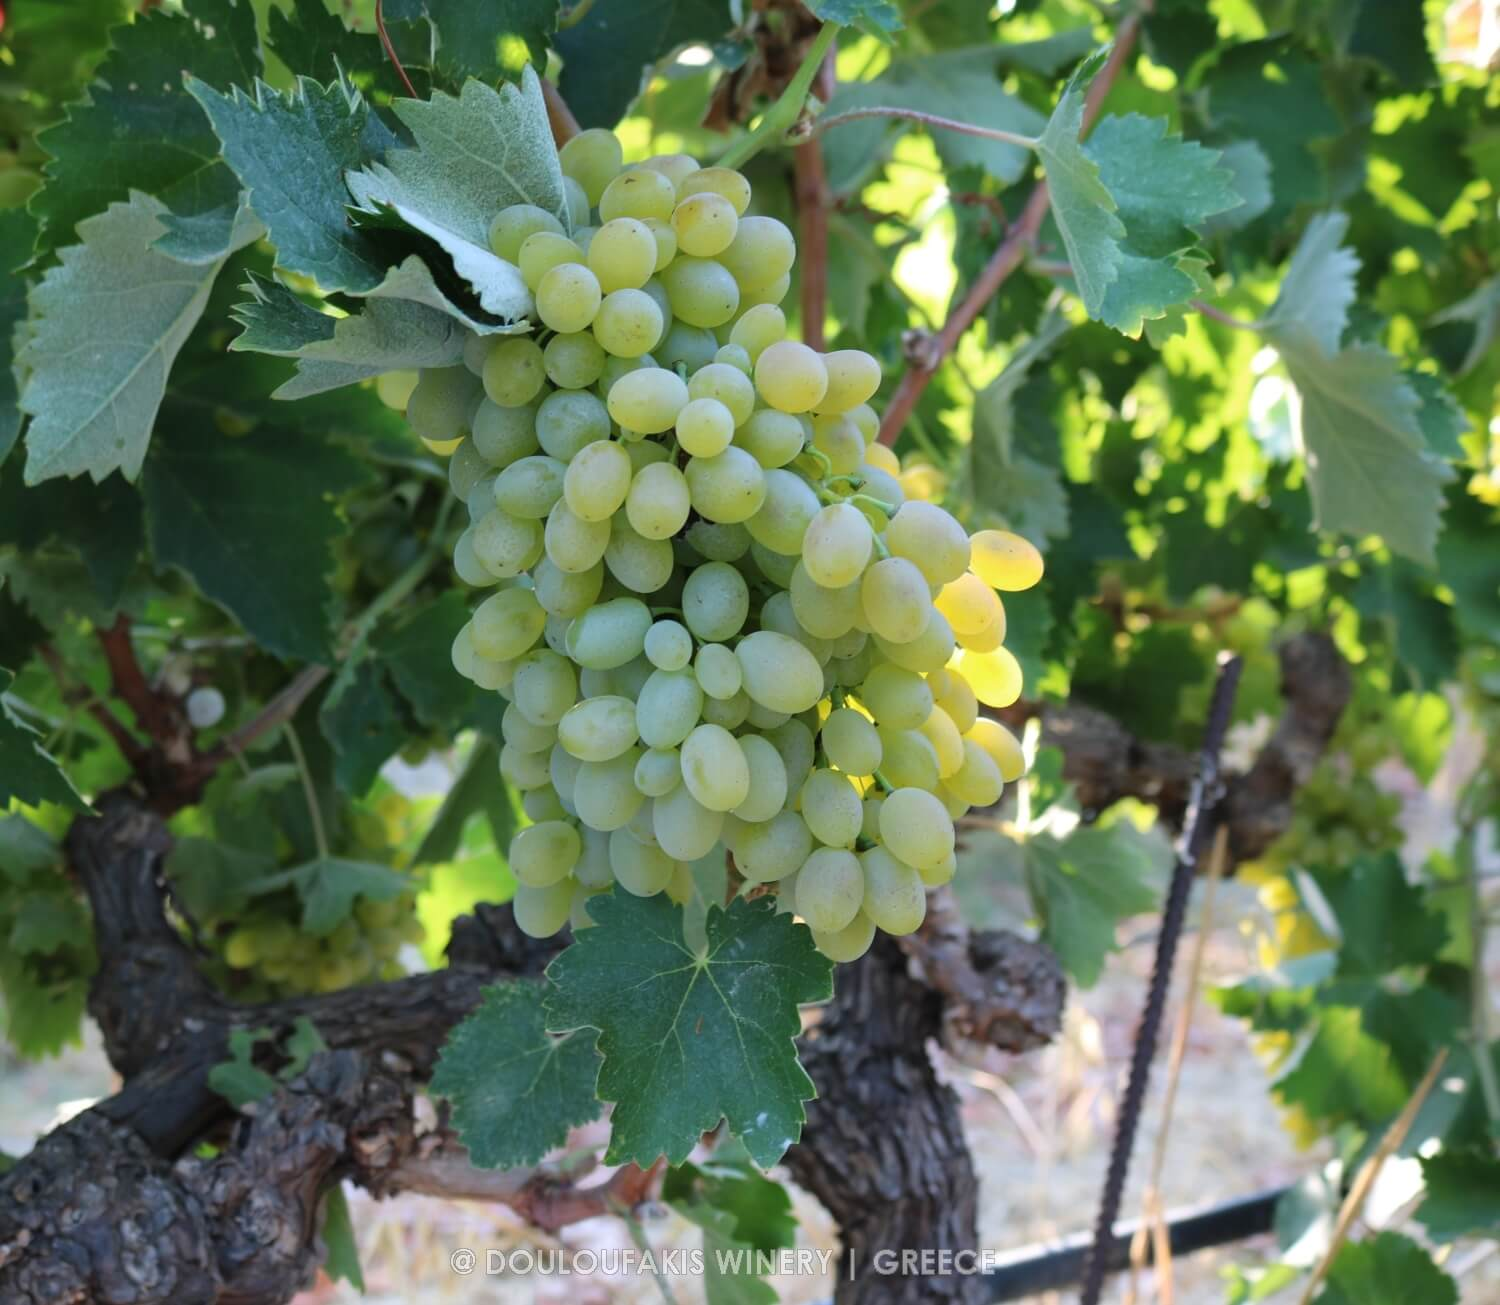 Grape variety Vidiano from Crete, Greece